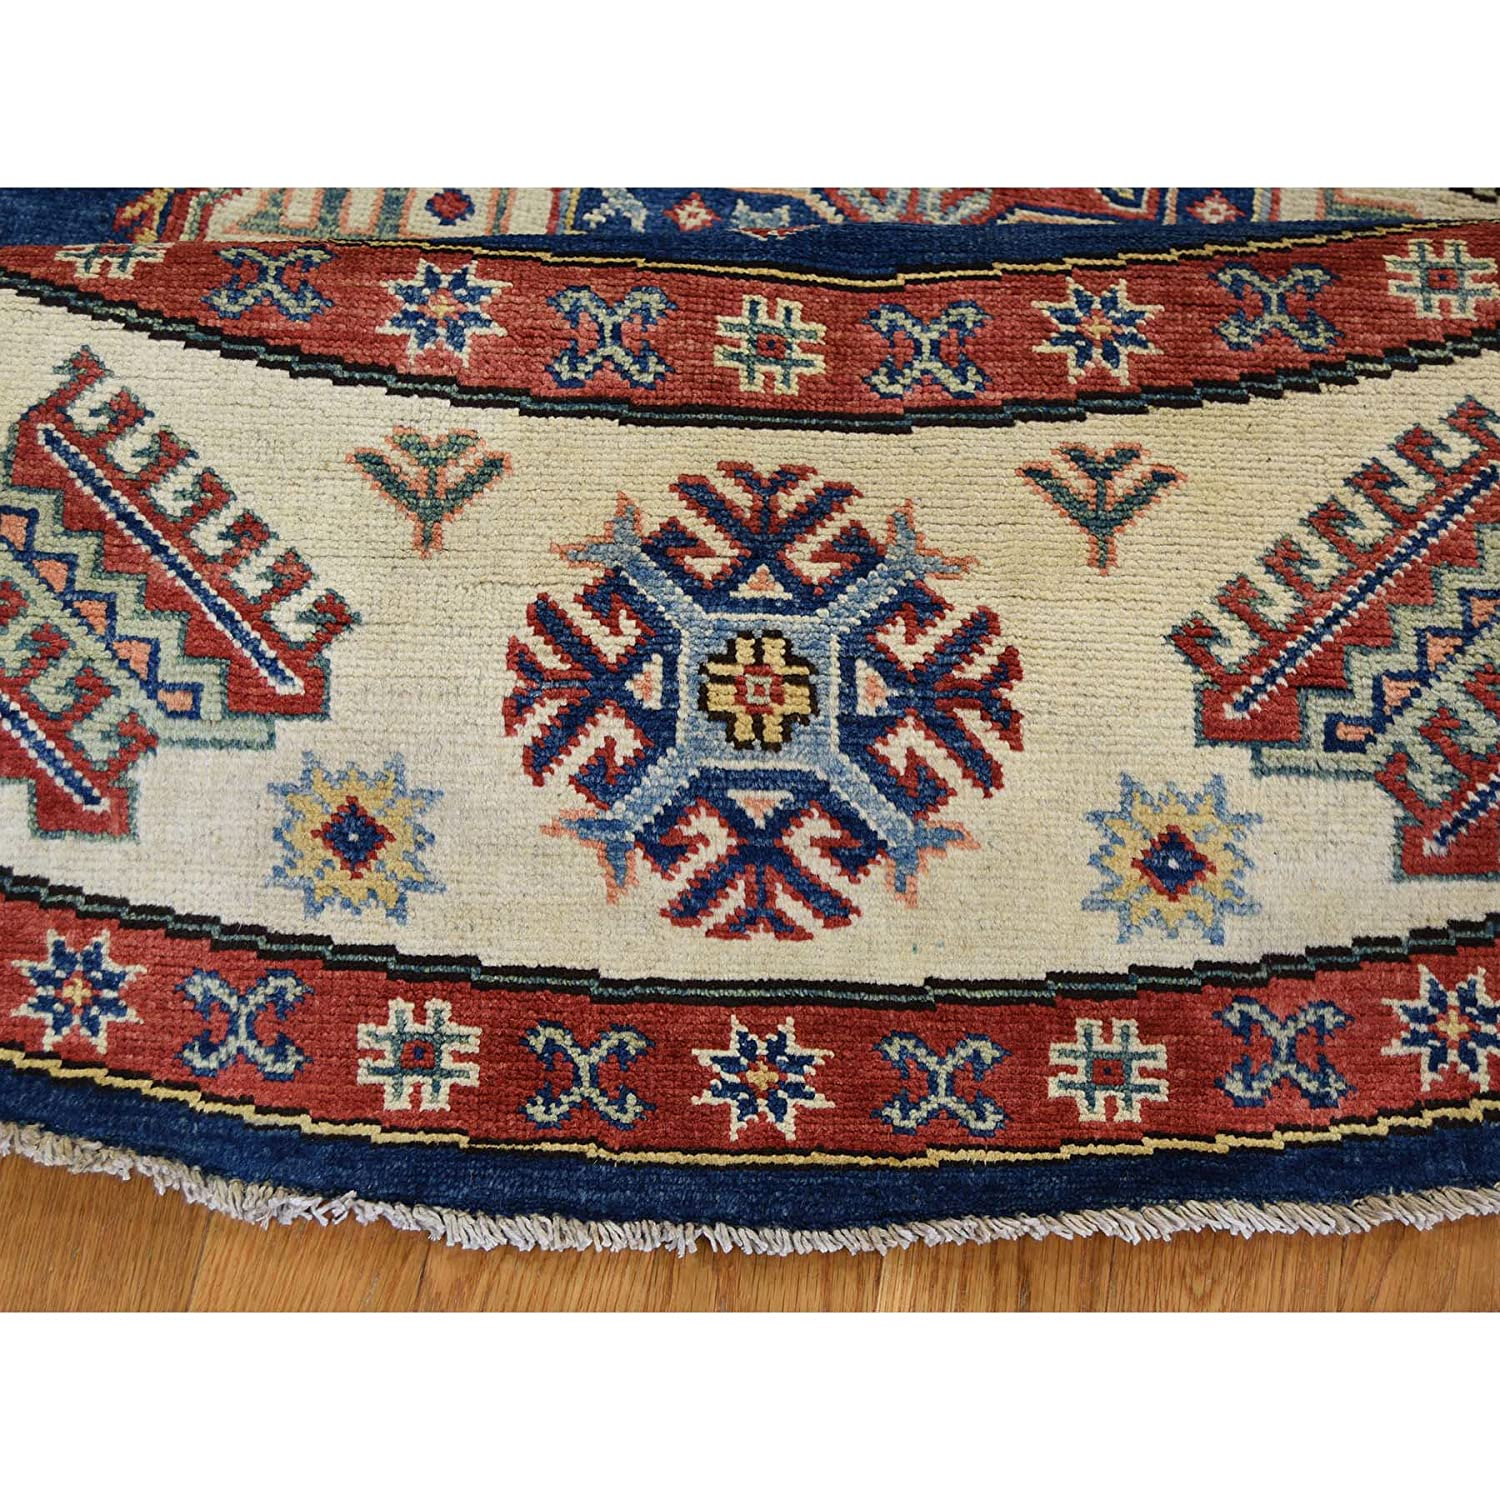 Amazon.com: Hand-Knotted Pure Wool Navy Blue Special Kazak Round Rug (79x8): Kitchen & Dining